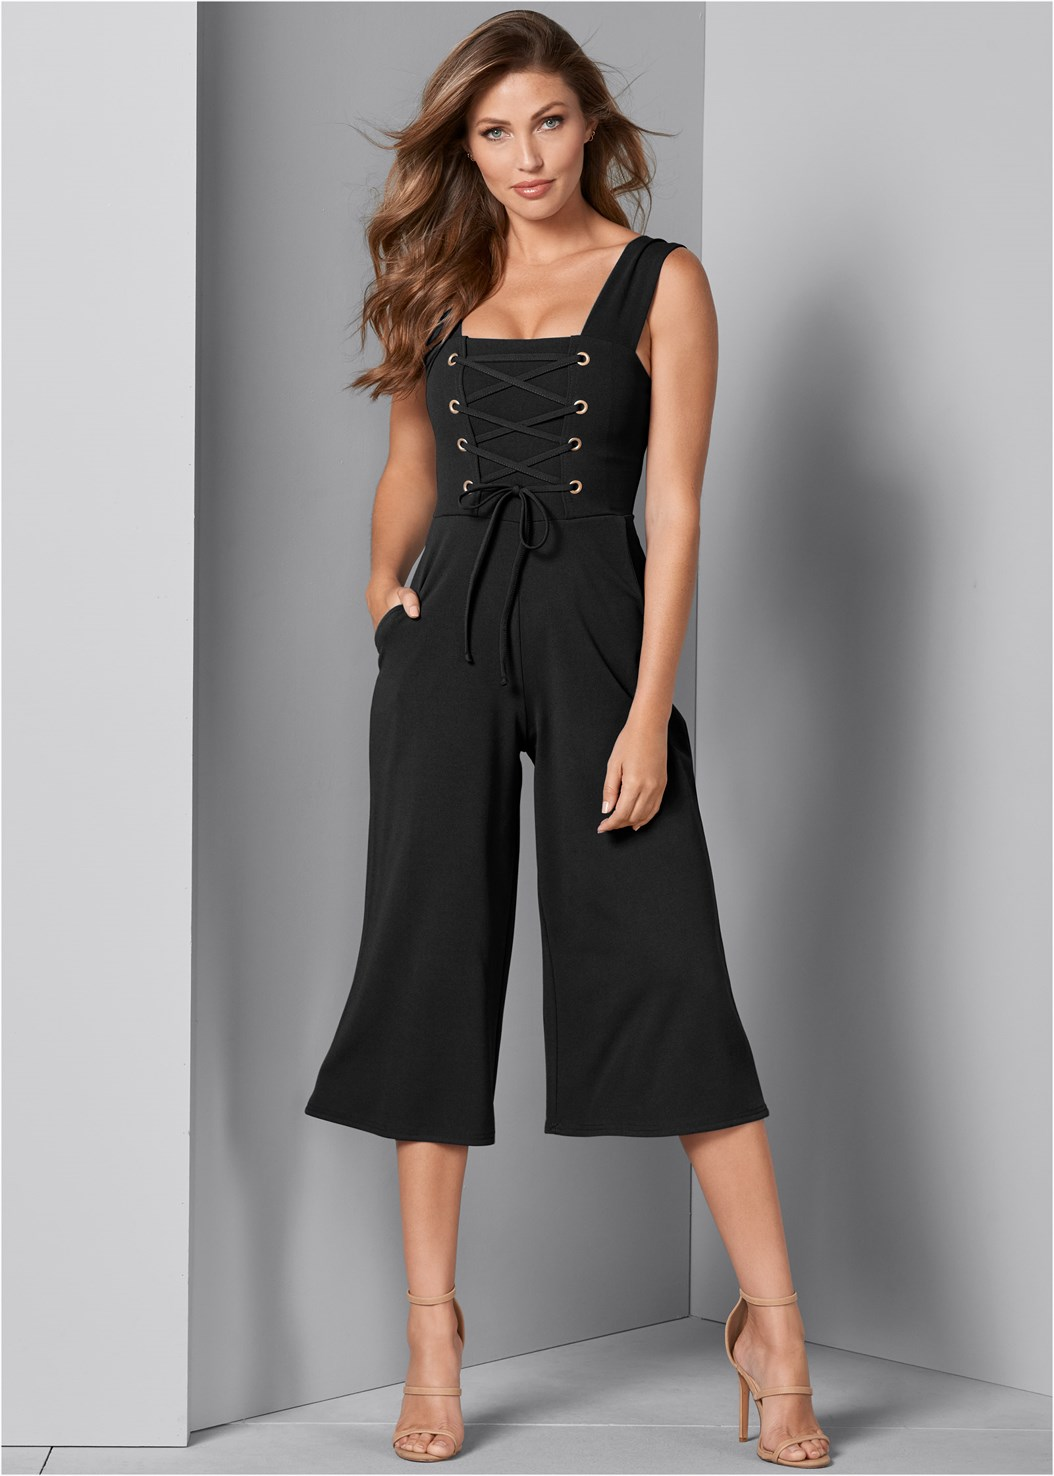 Lace Up Culotte Jumpsuit,High Heel Strappy Sandals